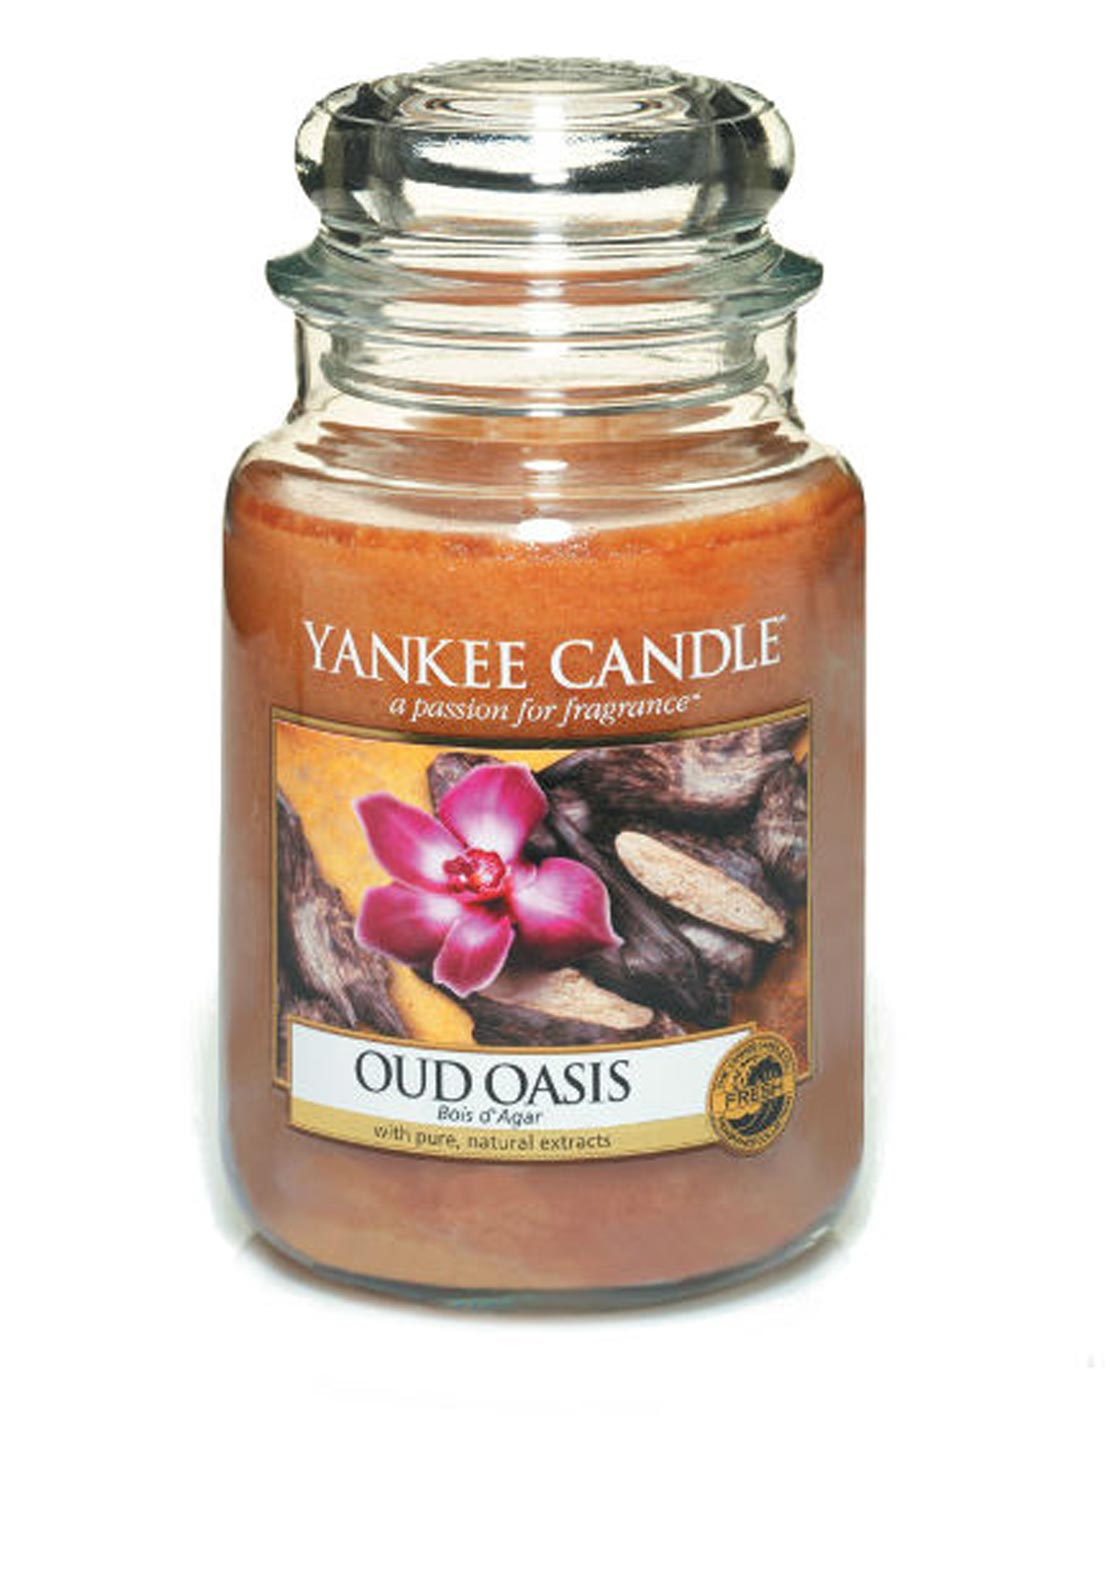 Yankee Candle Large Classic Jar, Oud Oasis